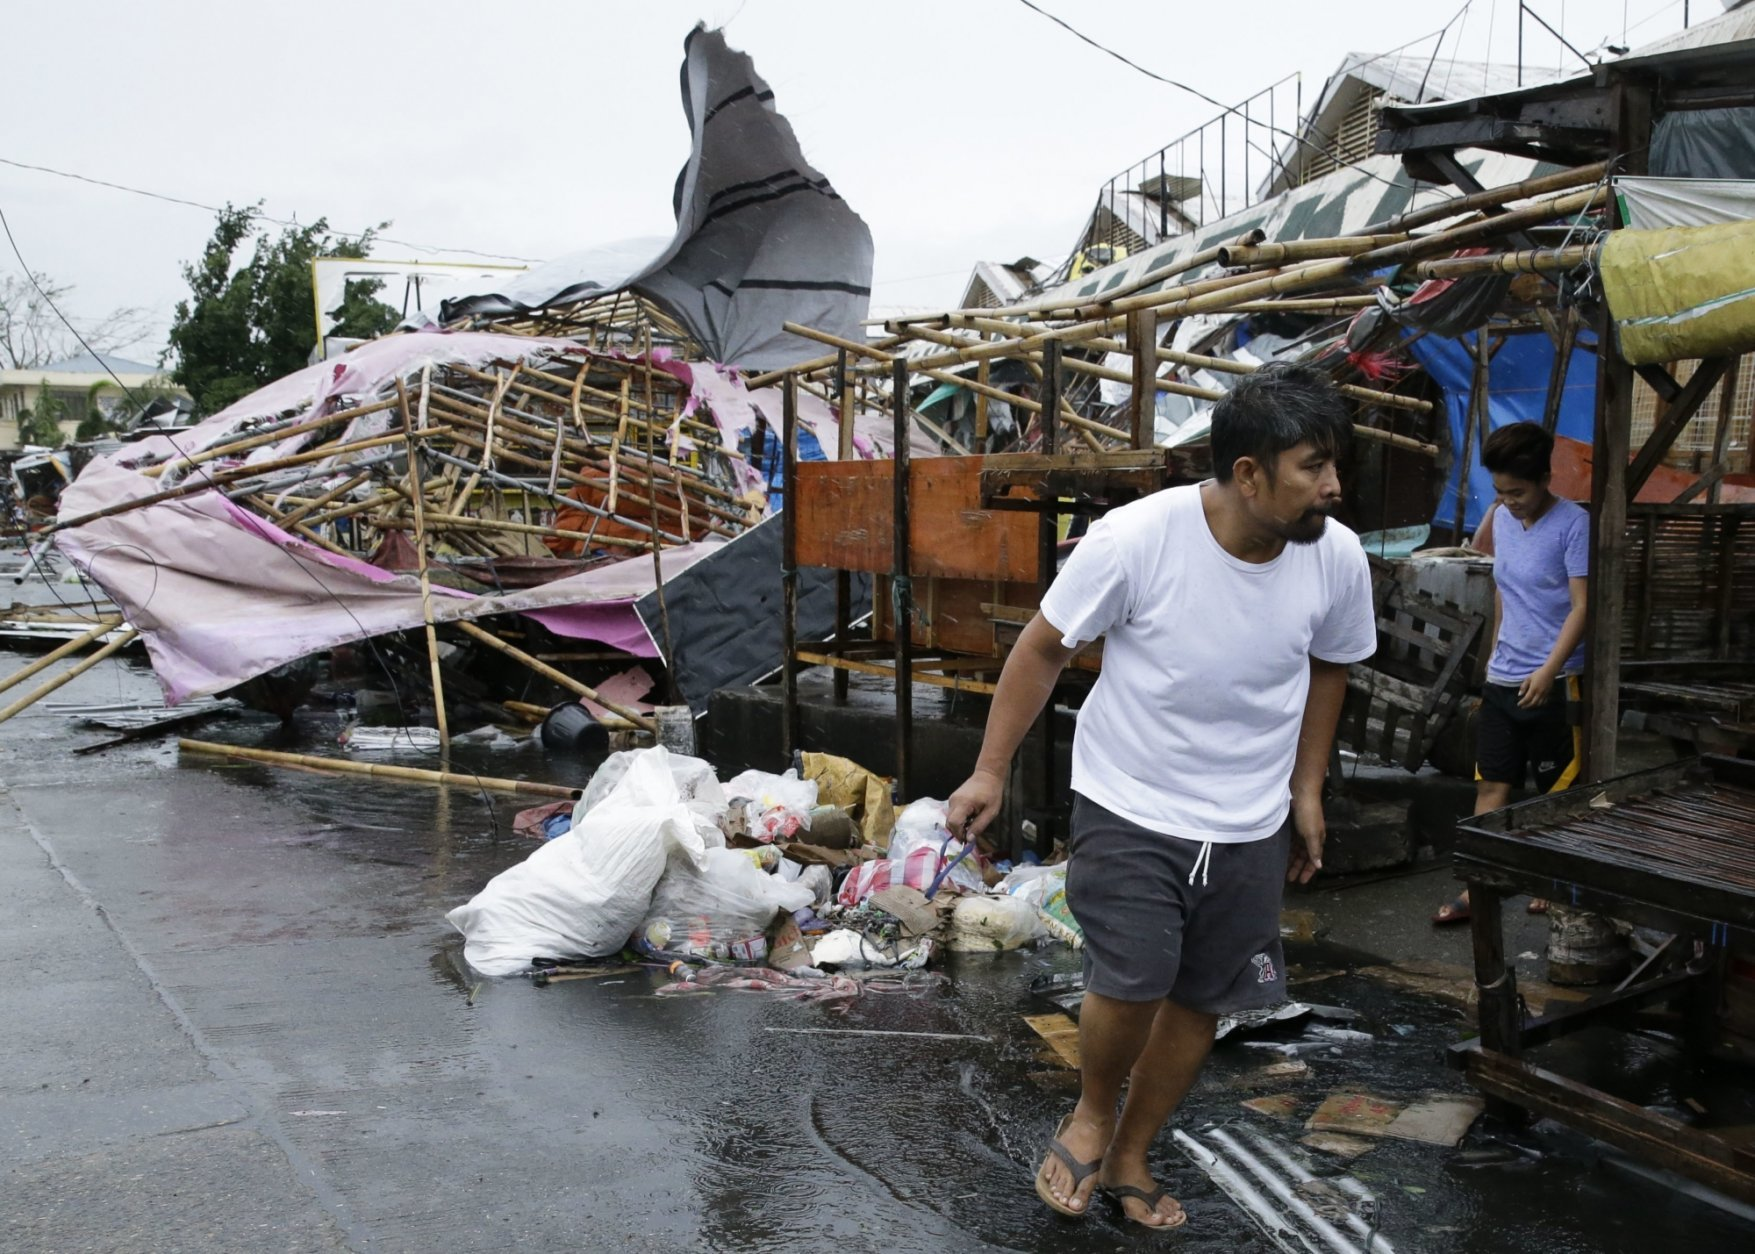 A resident walks past damaged stalls at a public market as Typhoon Mangkhut barreled across Tuguegarao city in Cagayan province, northeastern Philippines on Saturday, Sept. 15, 2018. The typhoon slammed into the Philippines northeastern coast early Saturday, it's ferocious winds and blinding rain ripping off tin roof sheets and knocking out power, and plowed through the agricultural region at the start of the onslaught. (AP Photo/Aaron Favila)